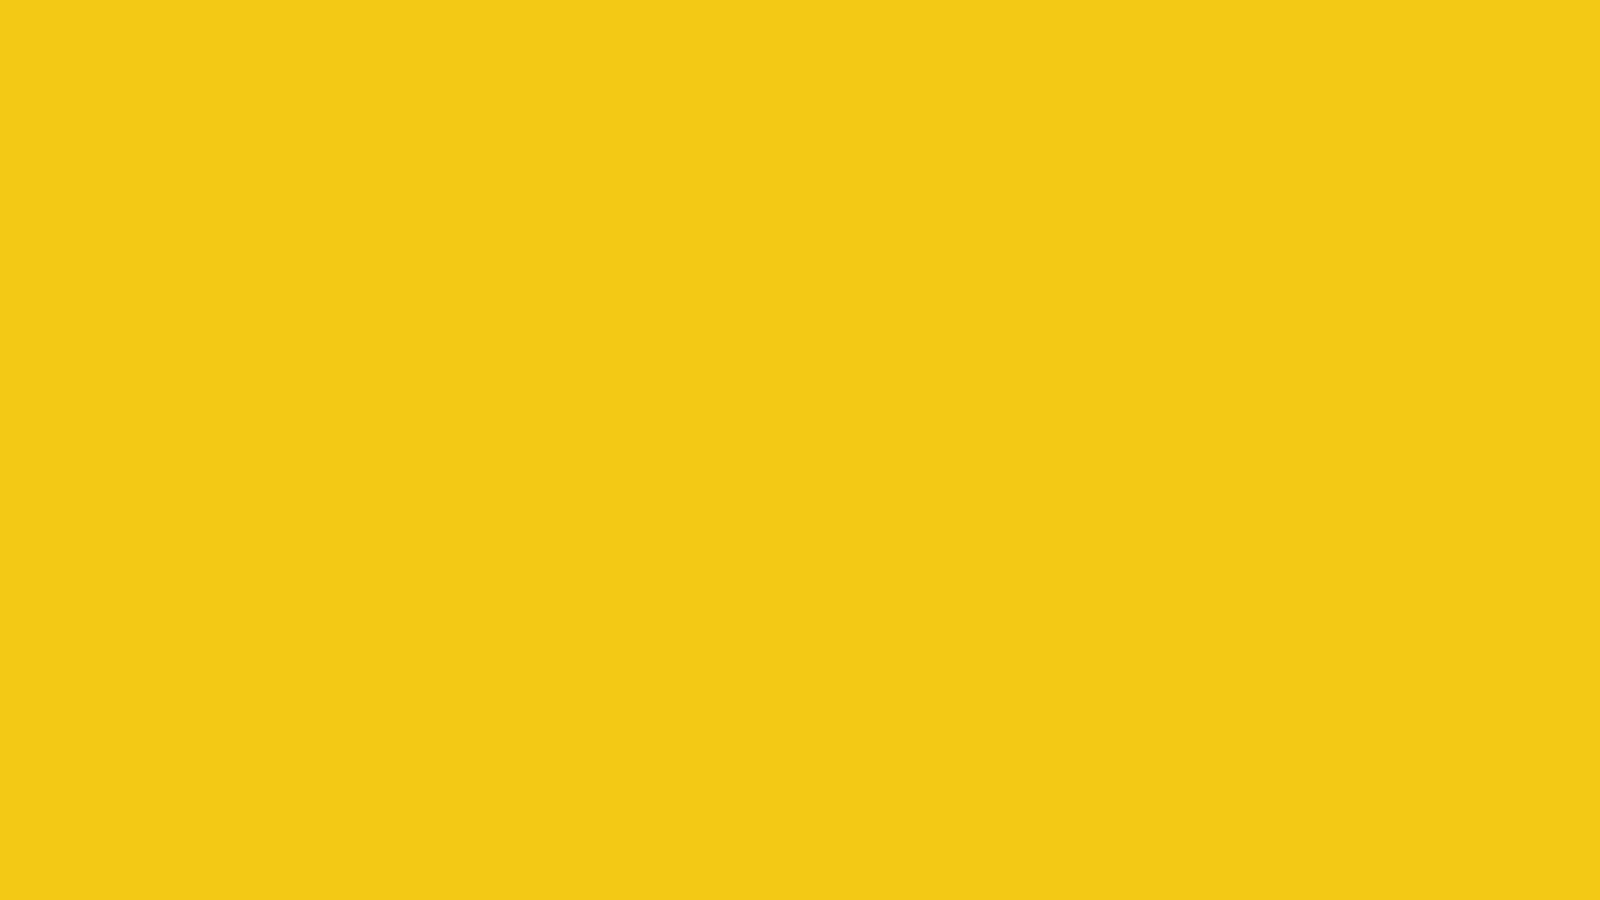 1600x900 Jonquil Solid Color Background